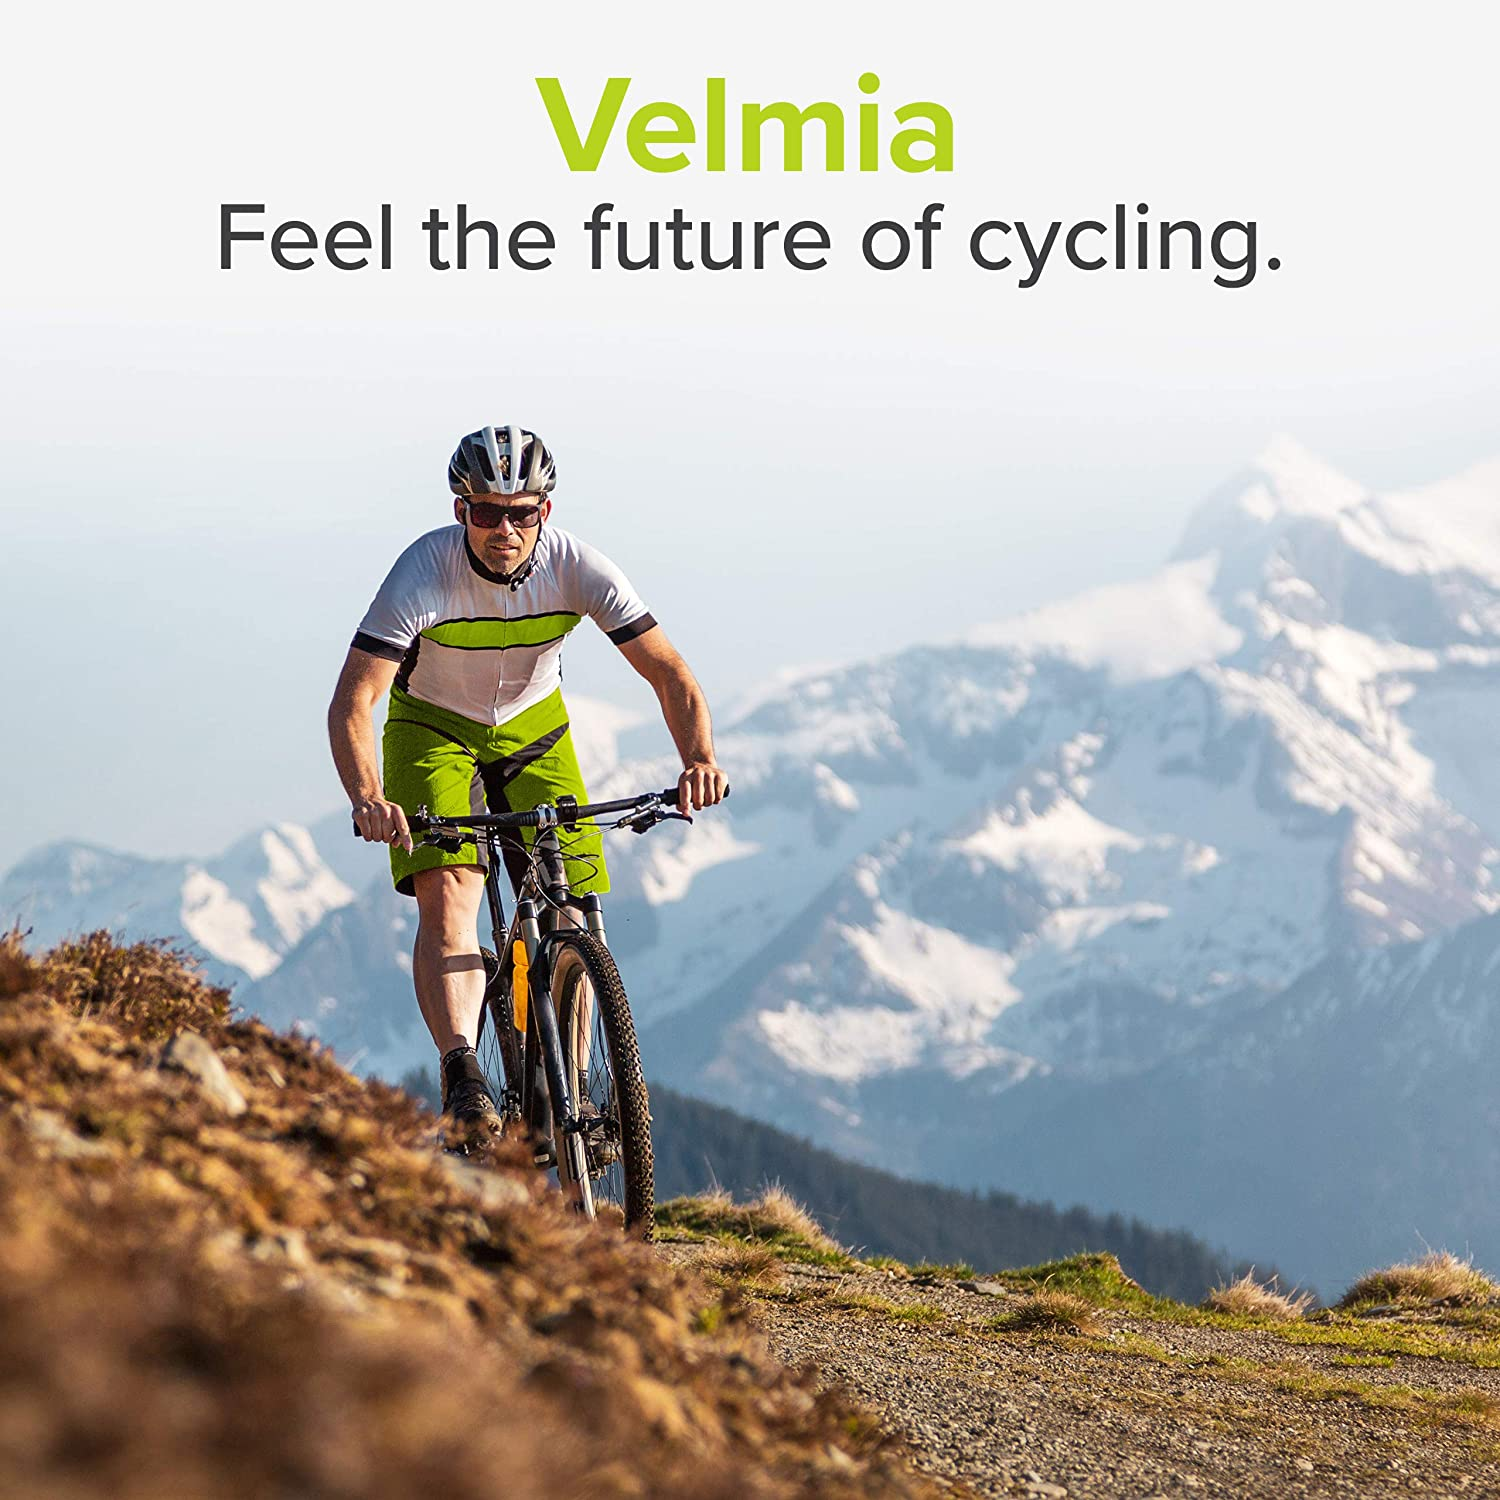 Mountain Bikes Waterproof Bicycle Saddle with Ergonomic Design /& Video-Instruction Velmia Bike Saddle for - Comfortable seat for Men and Women with Innovative 3-Zone-Concept /& Memory Foam